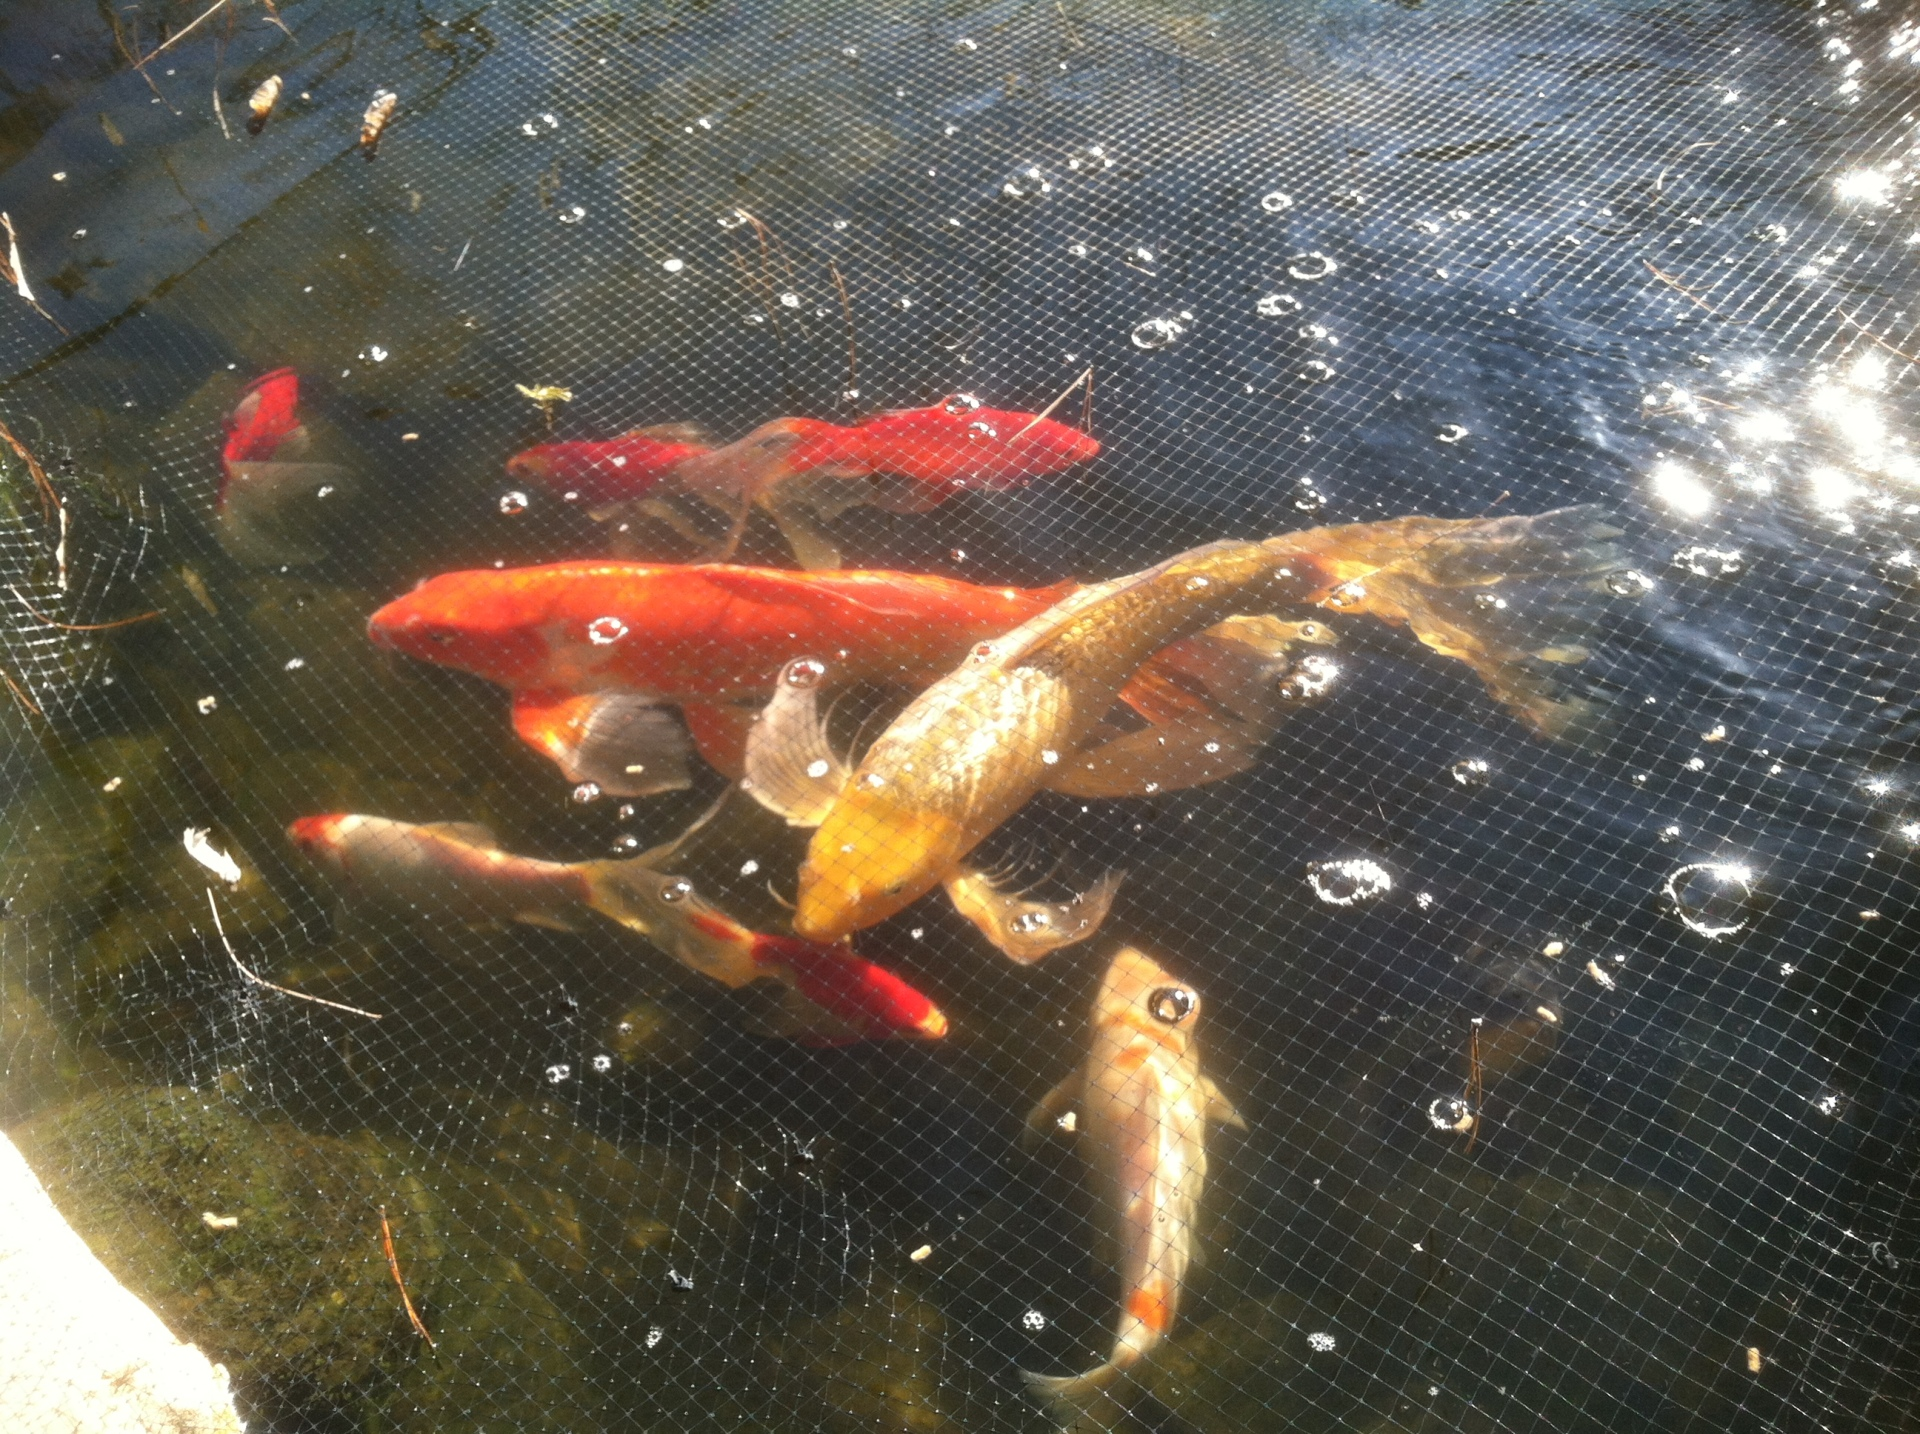 Koi & Gold Fish in the pond